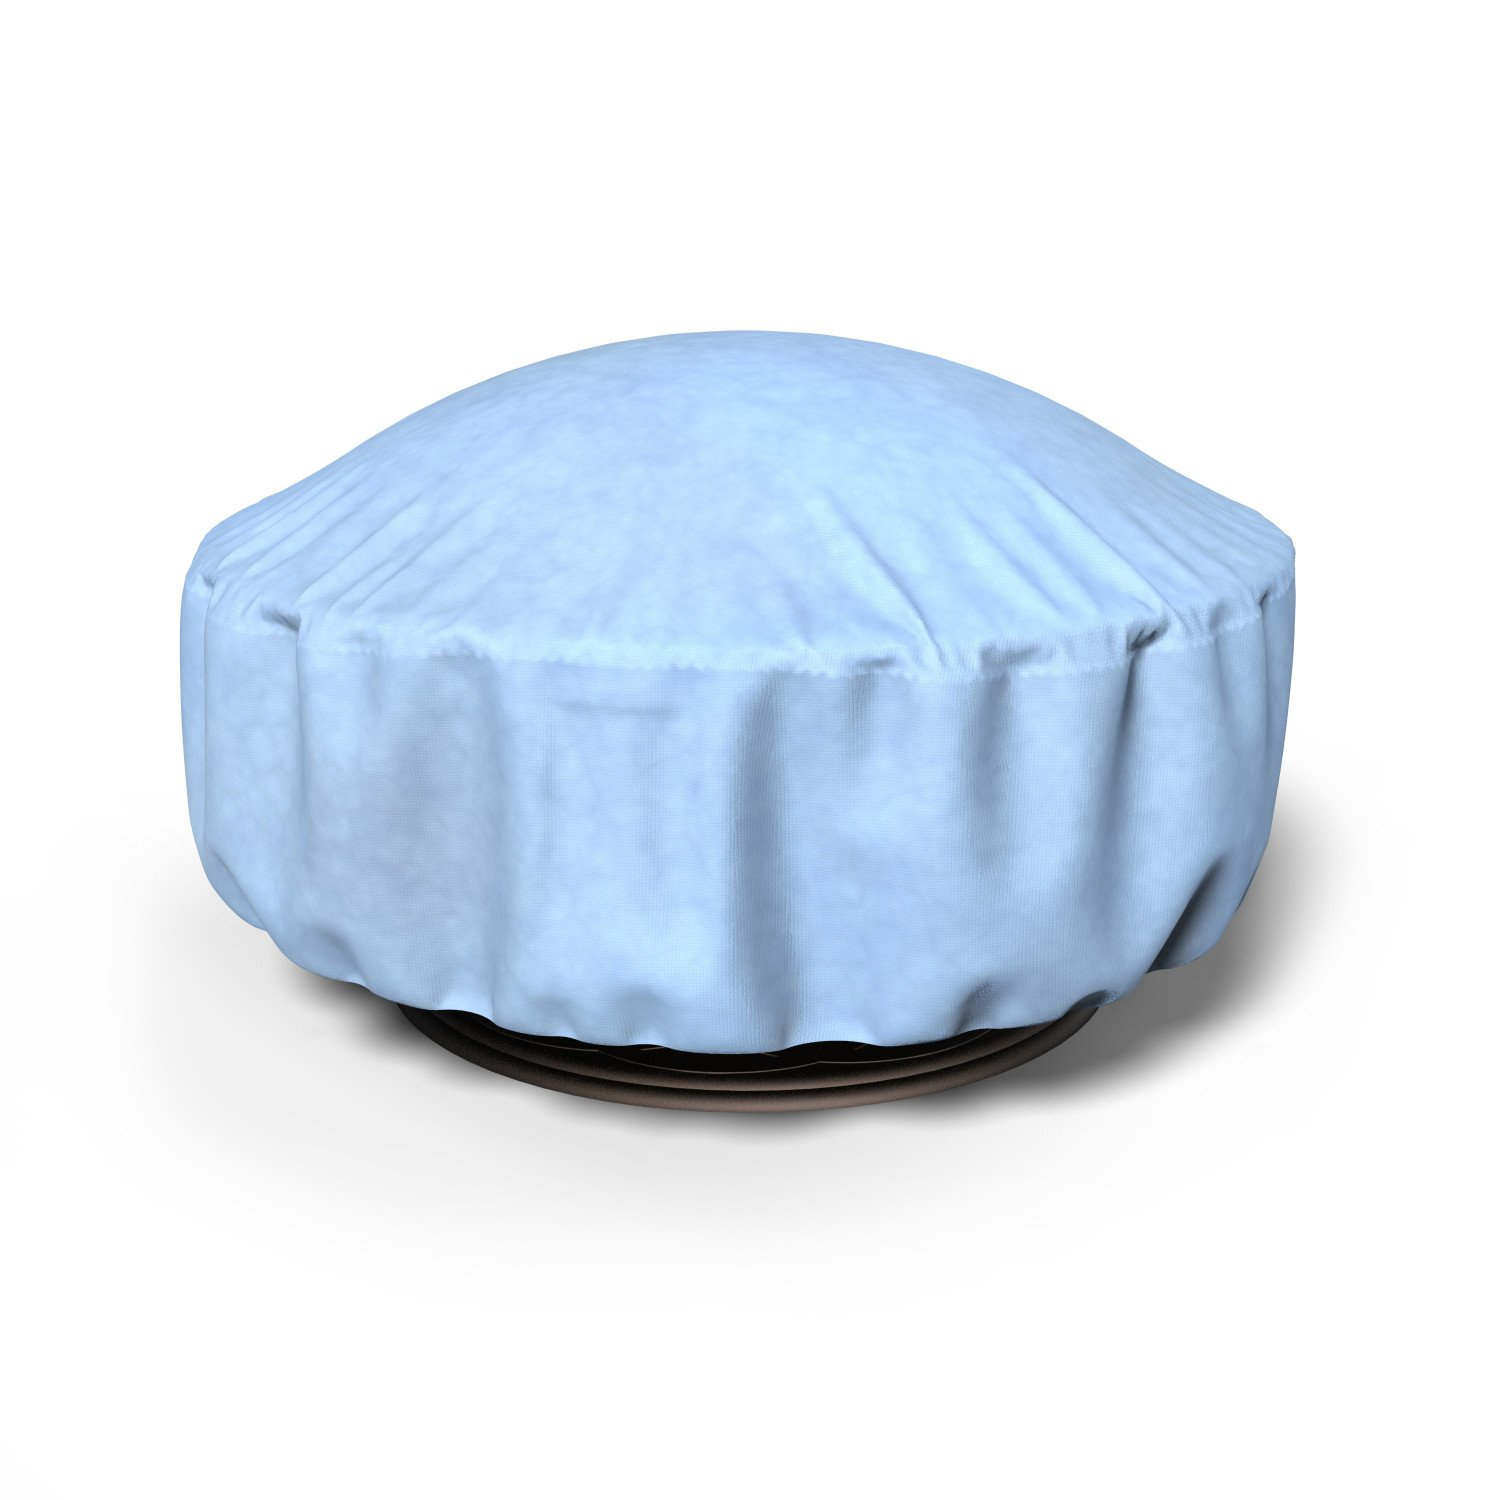 Budge All-Seasons Fire Pit Cover P9A15BG1, Blue (36 Diameter, 15 Drop) by Budge